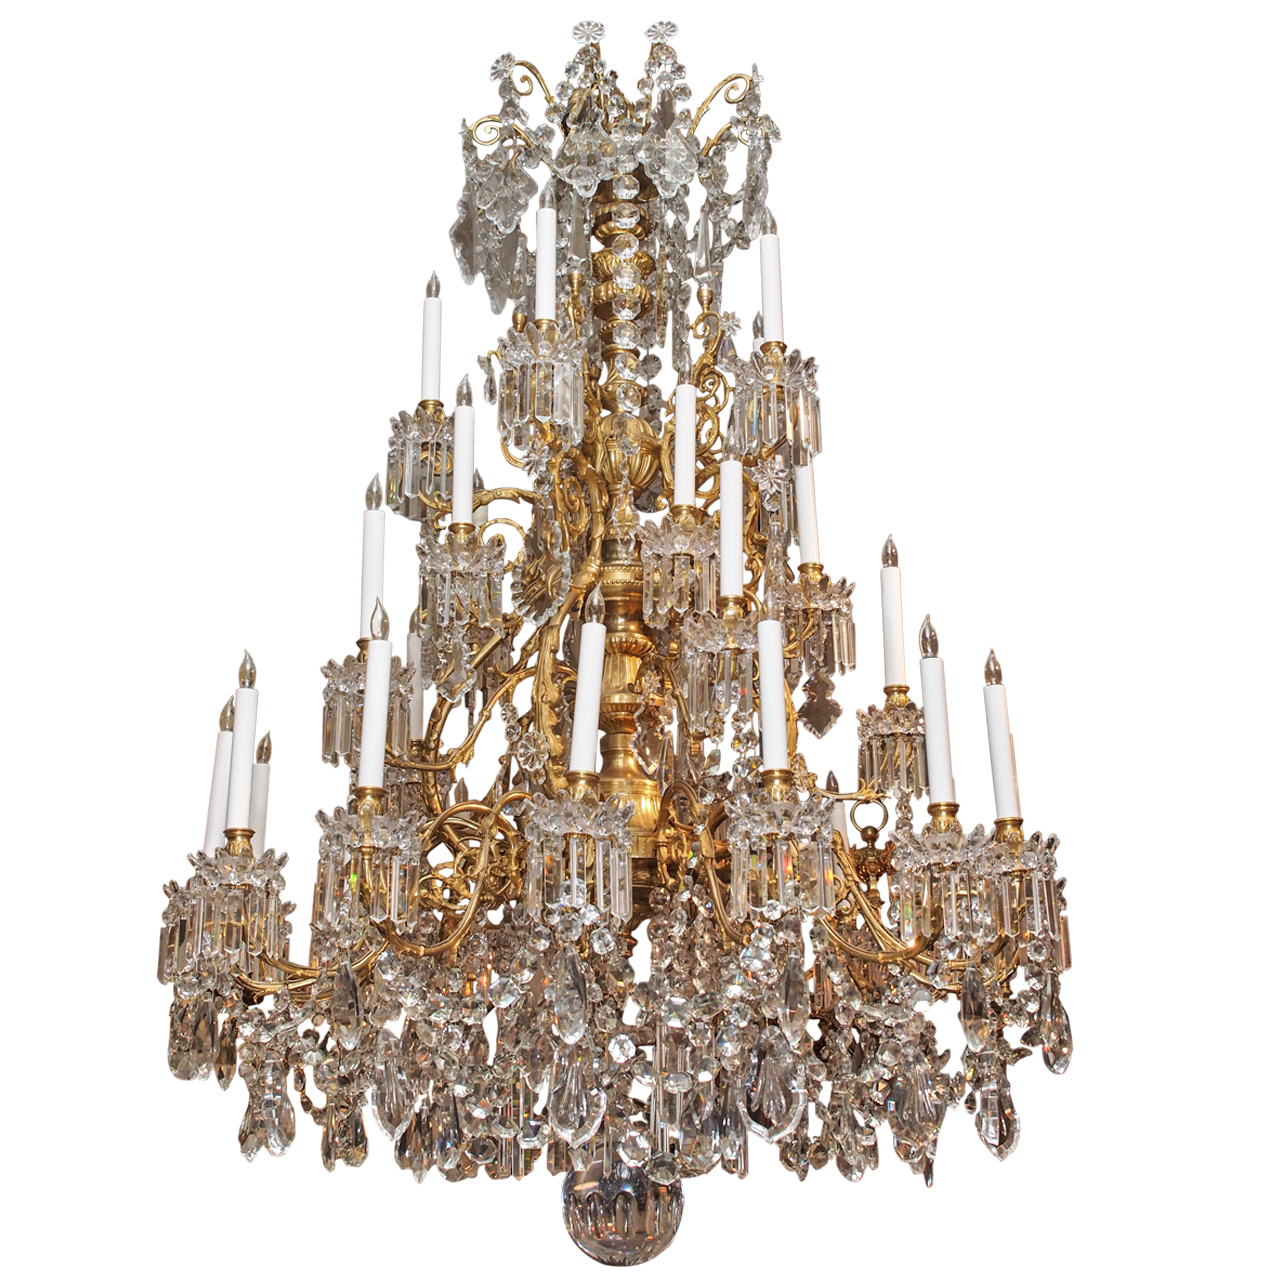 Antique french baccarat chandelier circa 1850 1870 keils antiques antique french baccarat chandelier circa 1850 1870 aloadofball Images